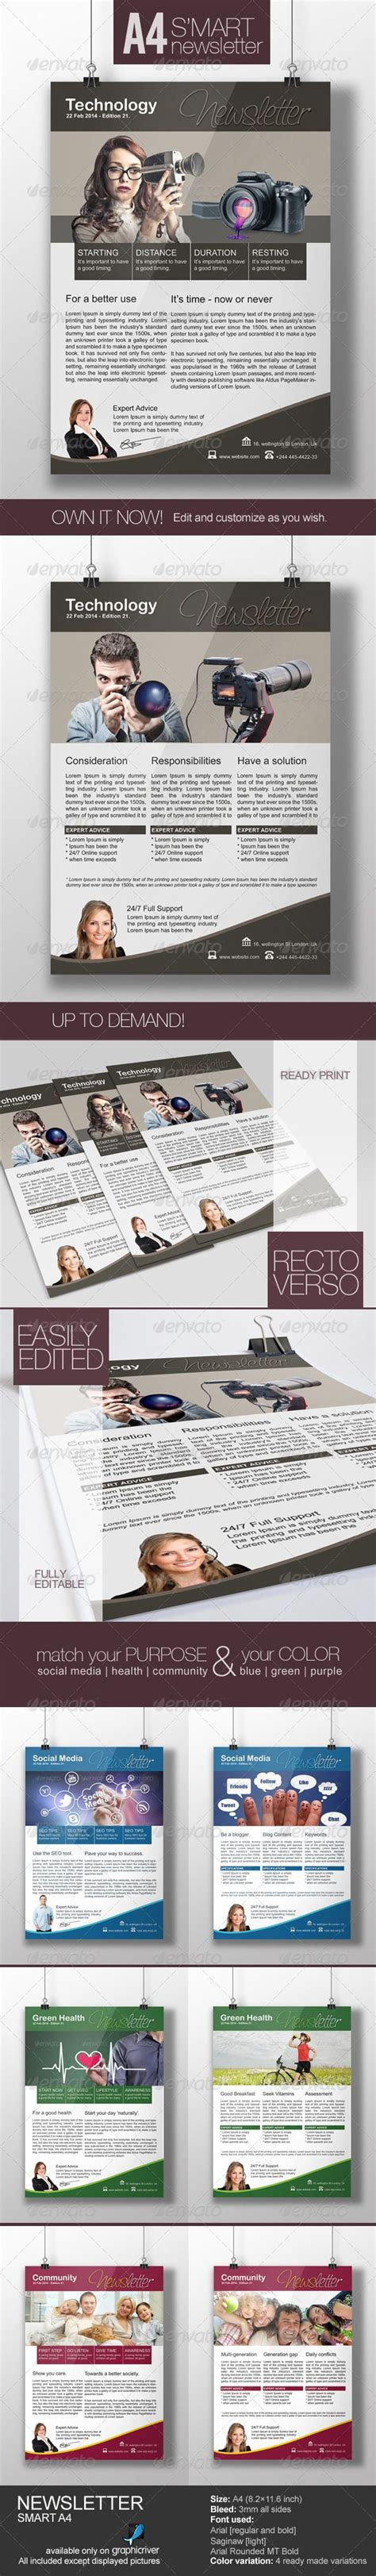 17 Best Images About Newsletter Exles Adobe Photoshop On Pinterest Newsletter Templates How To Create A Newsletter Template In Photoshop